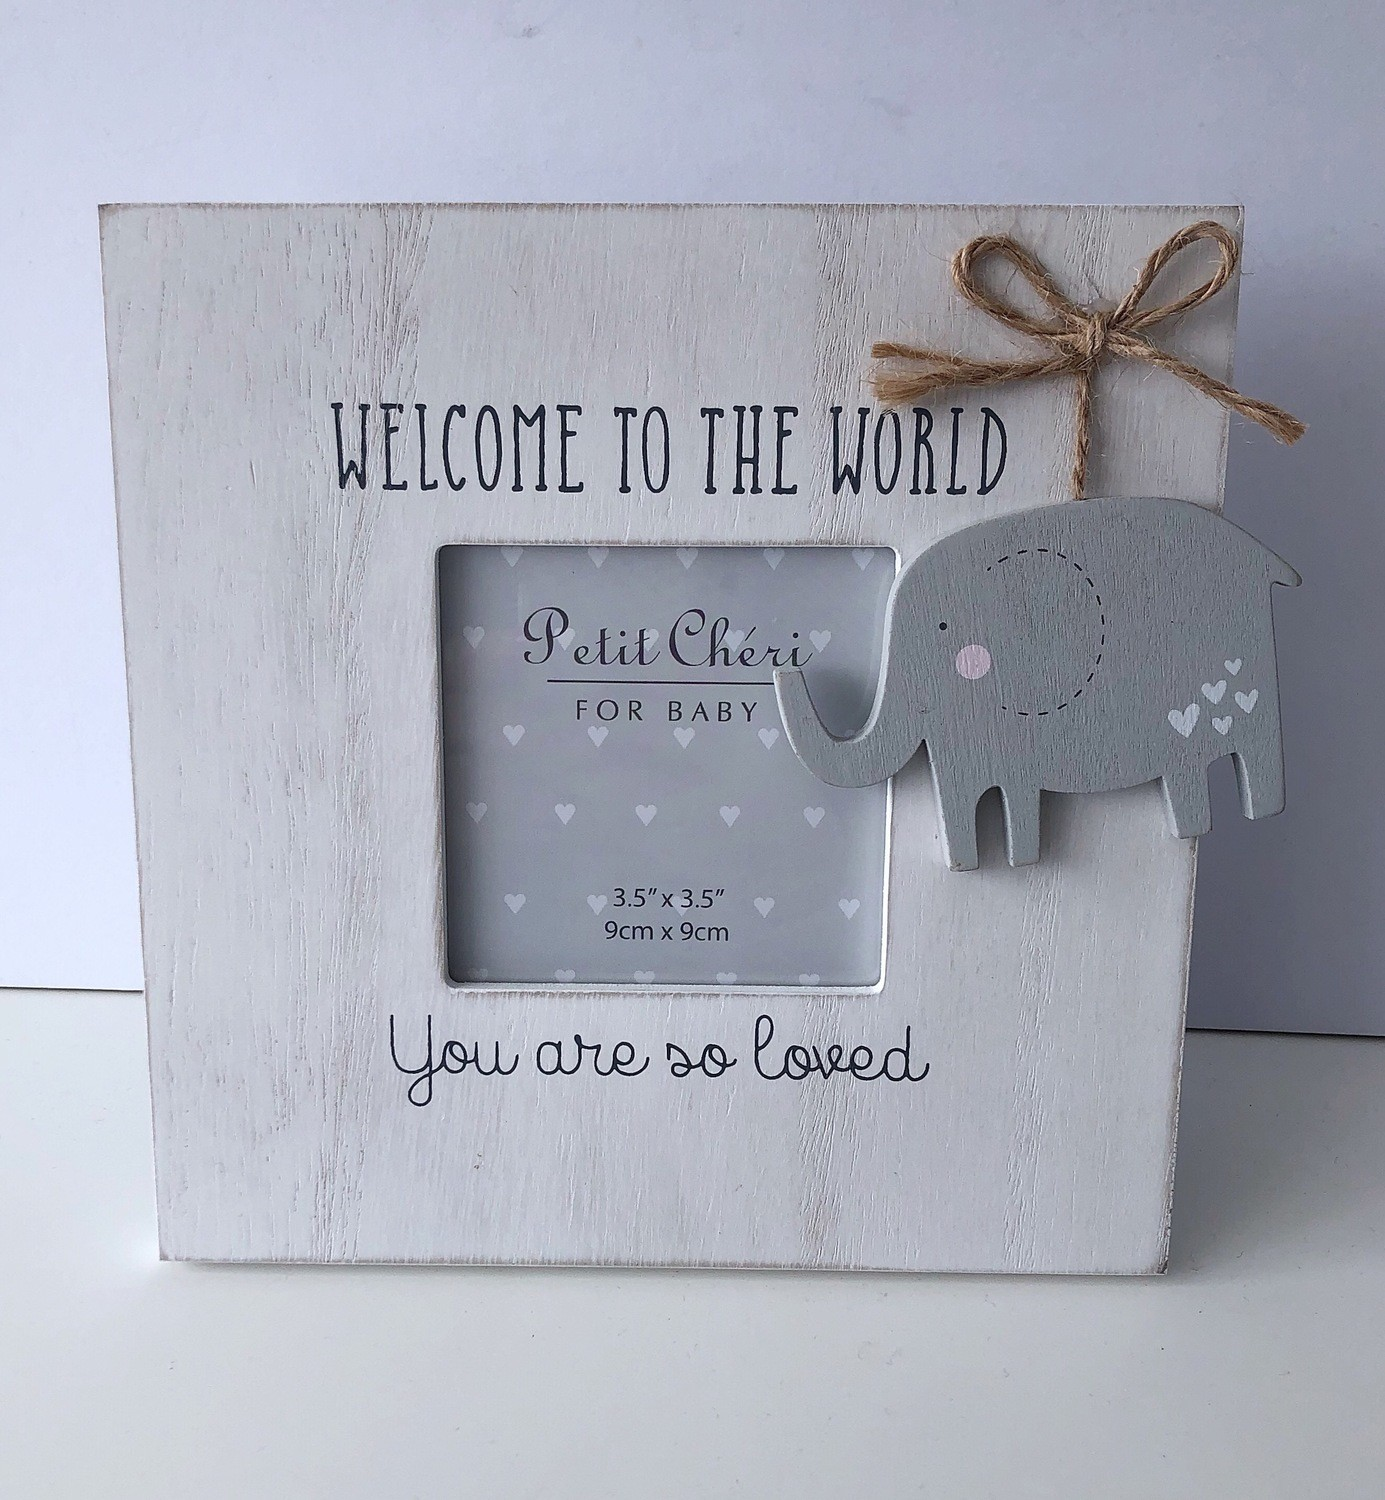 Welcome to the world baby photo frame